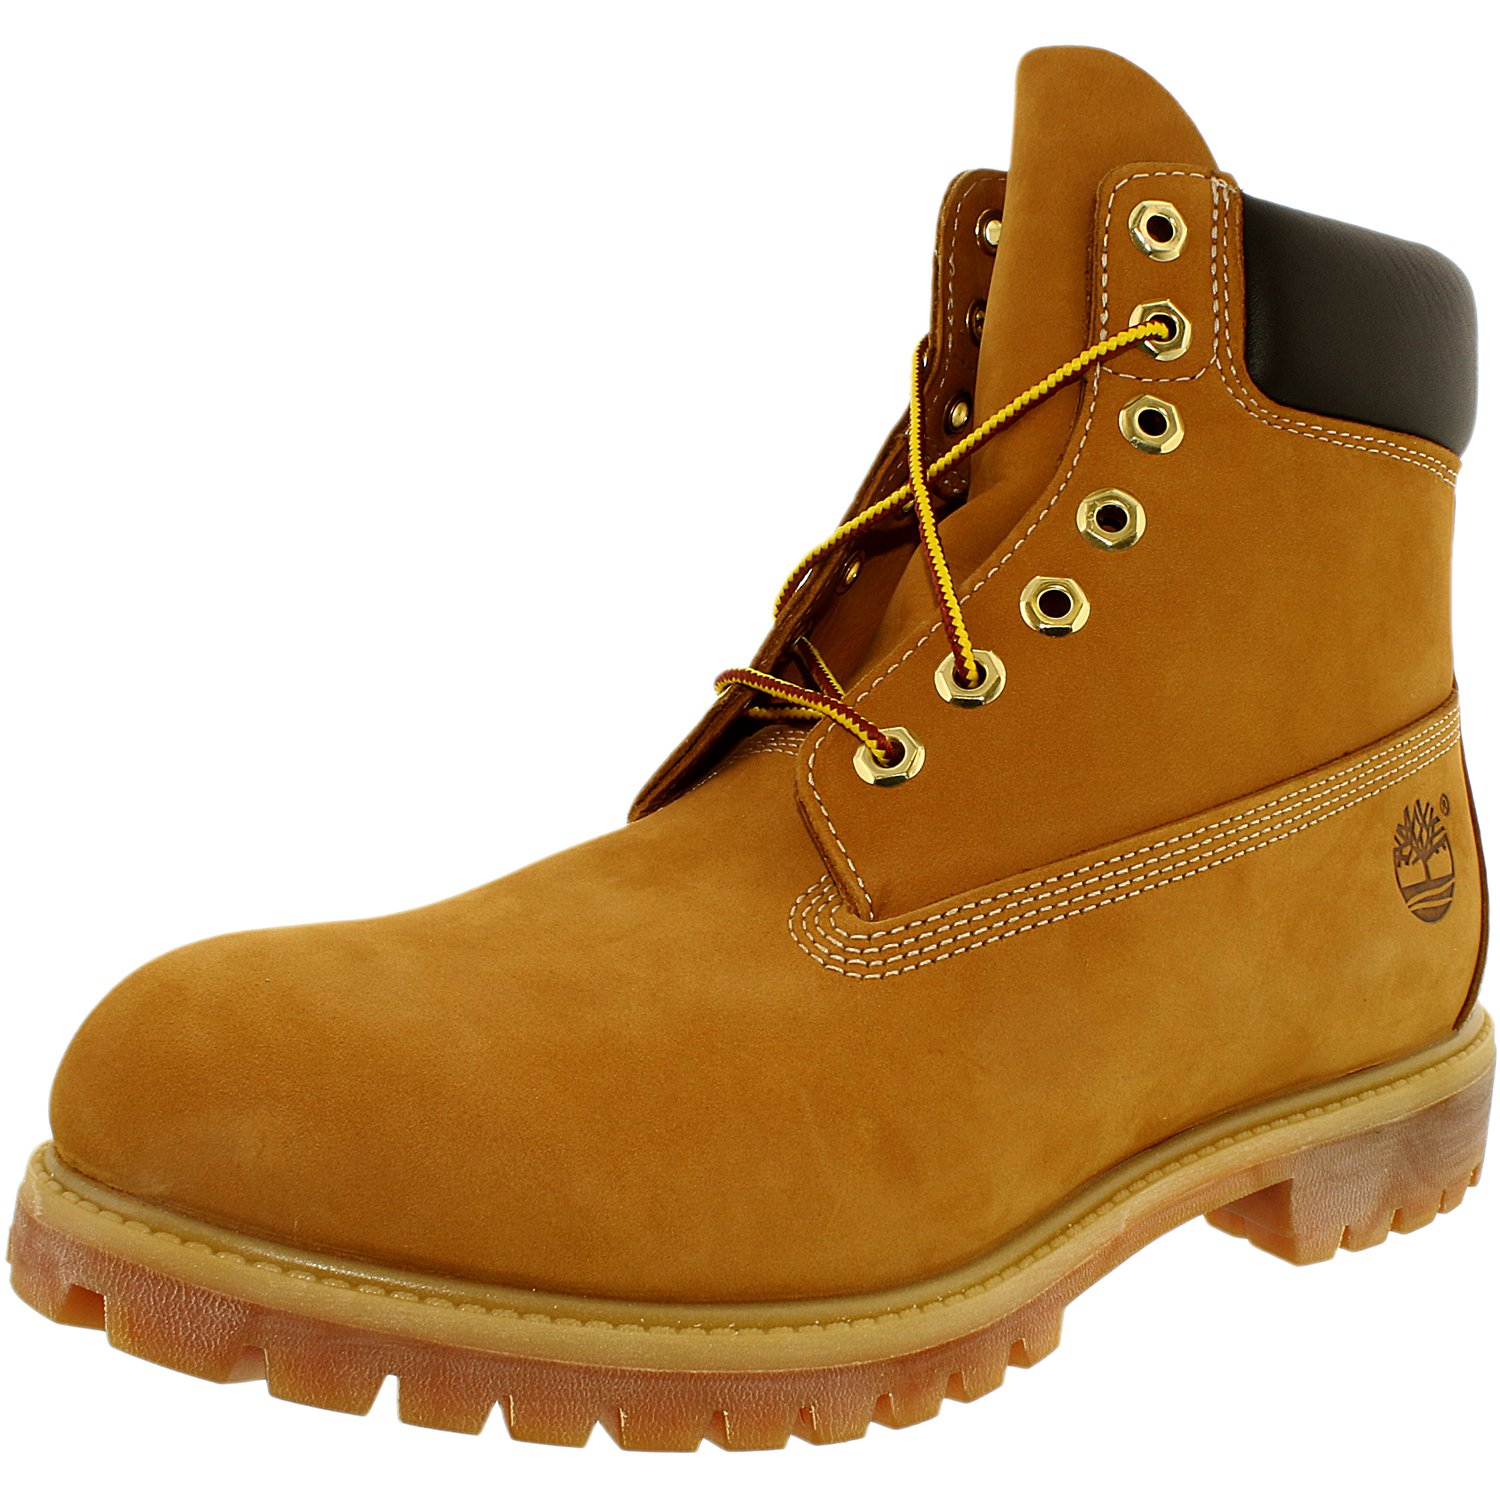 Timberland Men's 6 Inch Premium Boot Leather Wheat Yellow Ankle-High Leather Boot - 12W